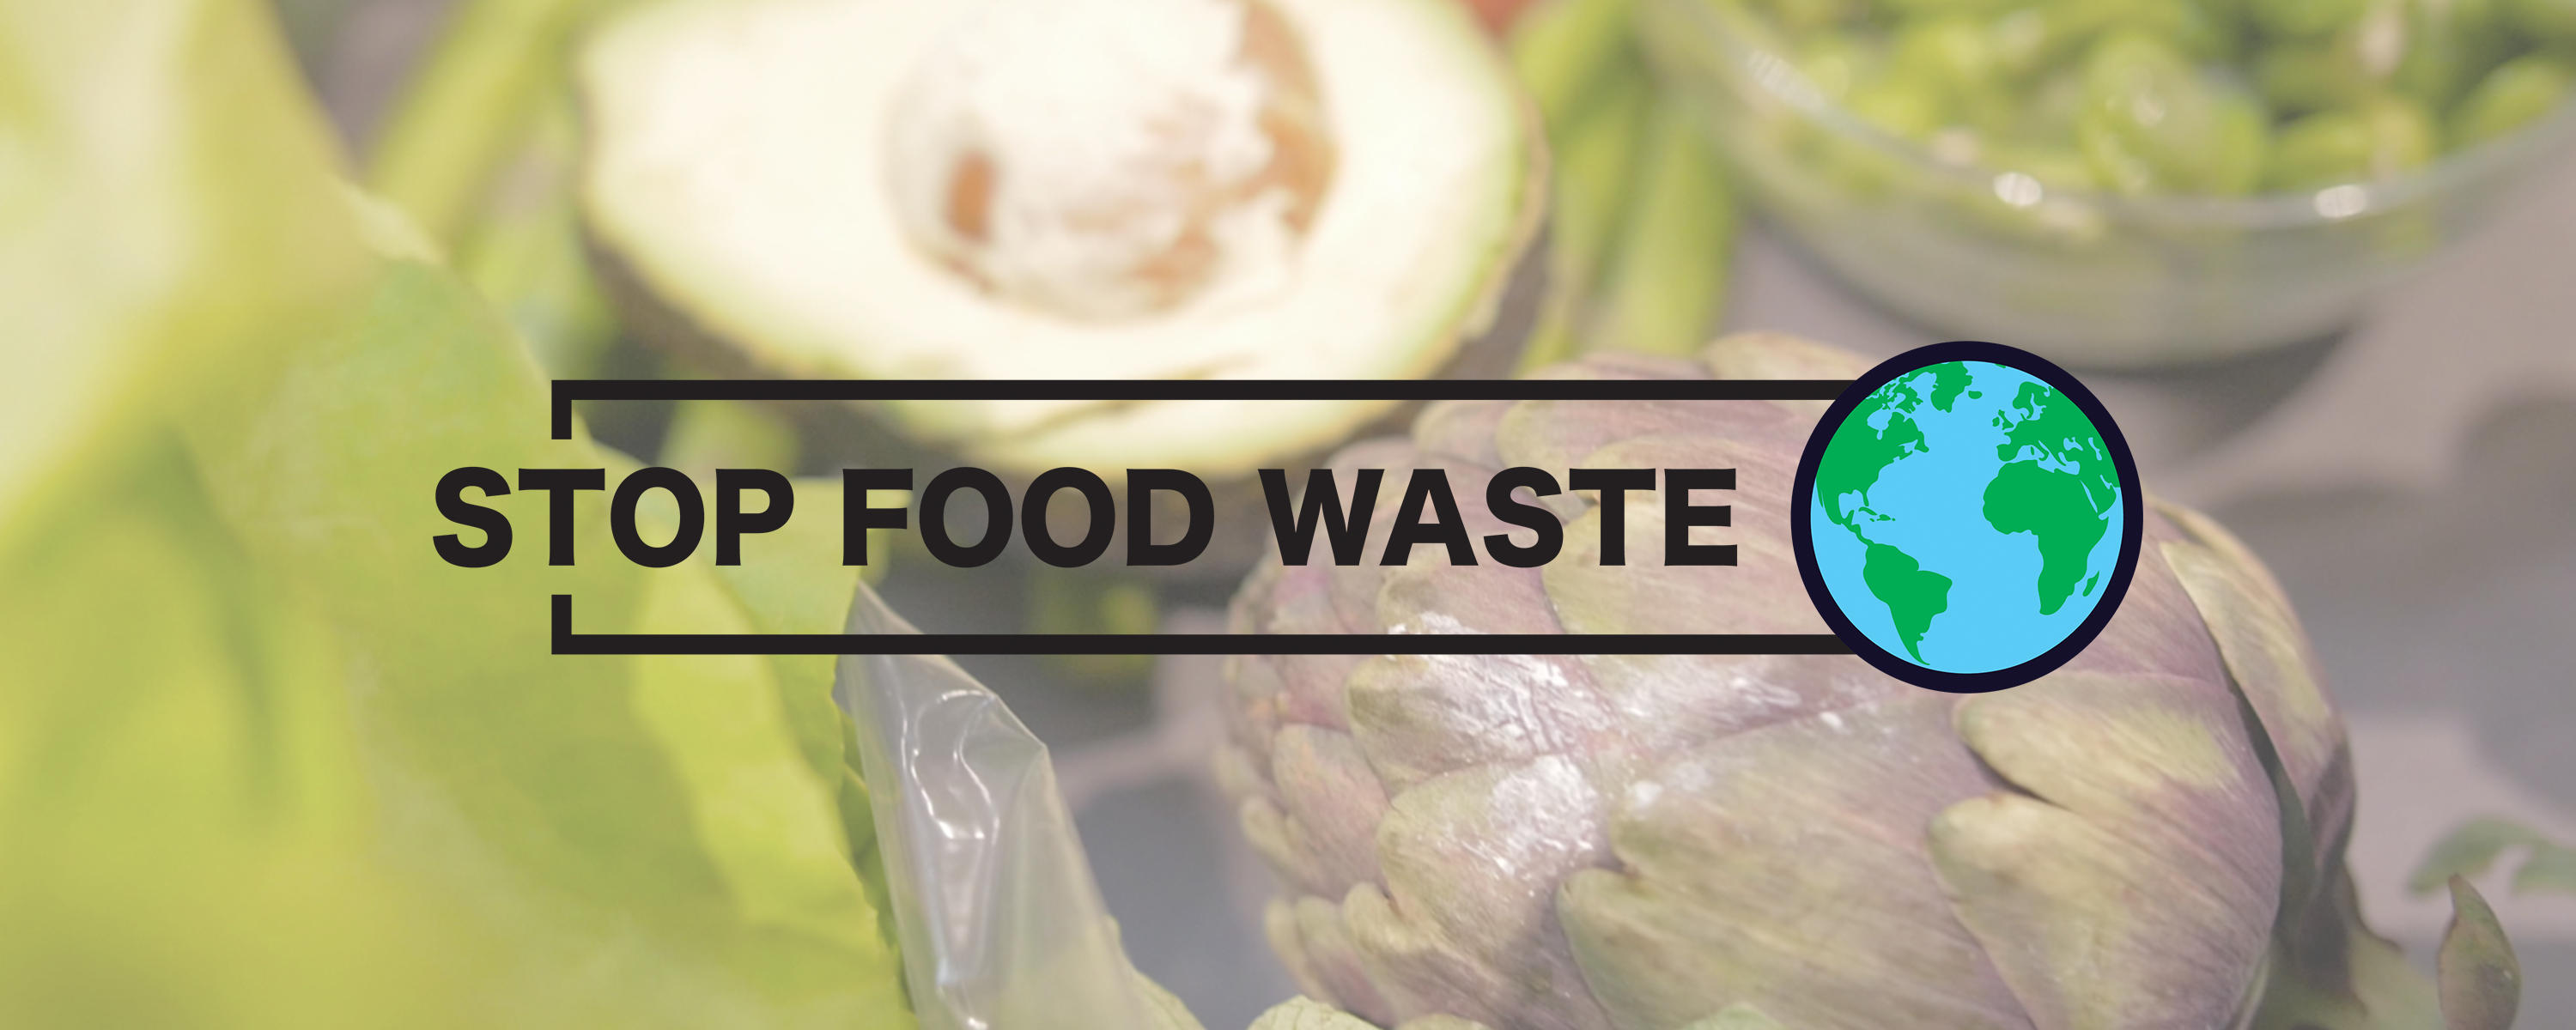 stop food waste day logo over picture of vegetables